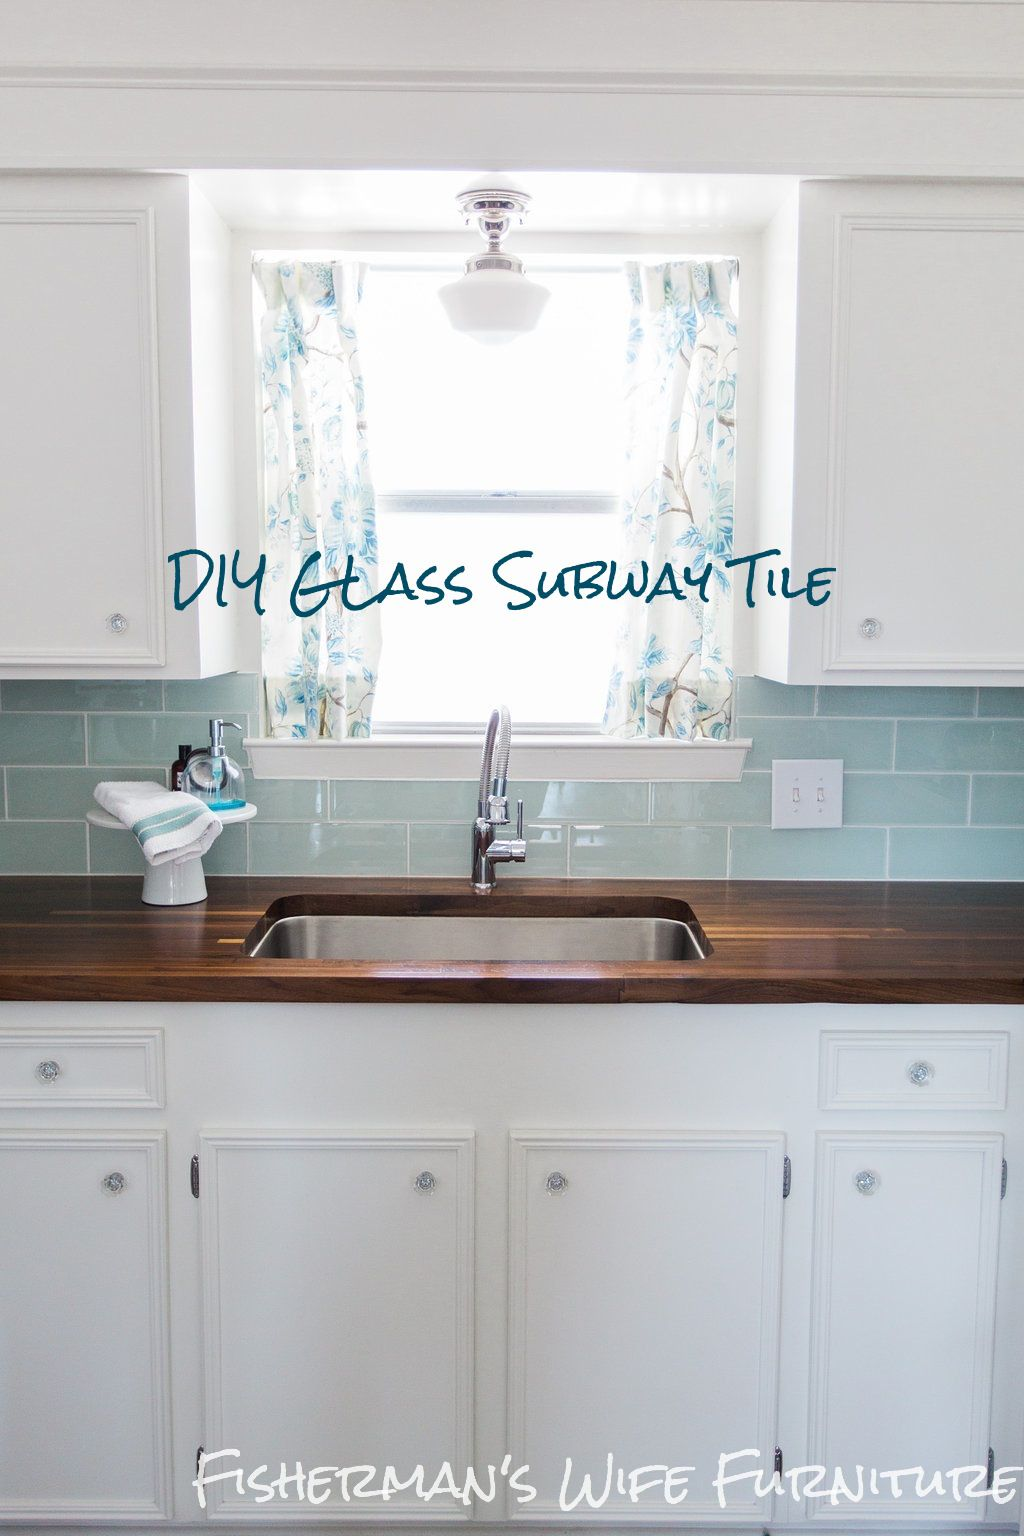 diy glass tile backsplash - how to cut and install glass subway